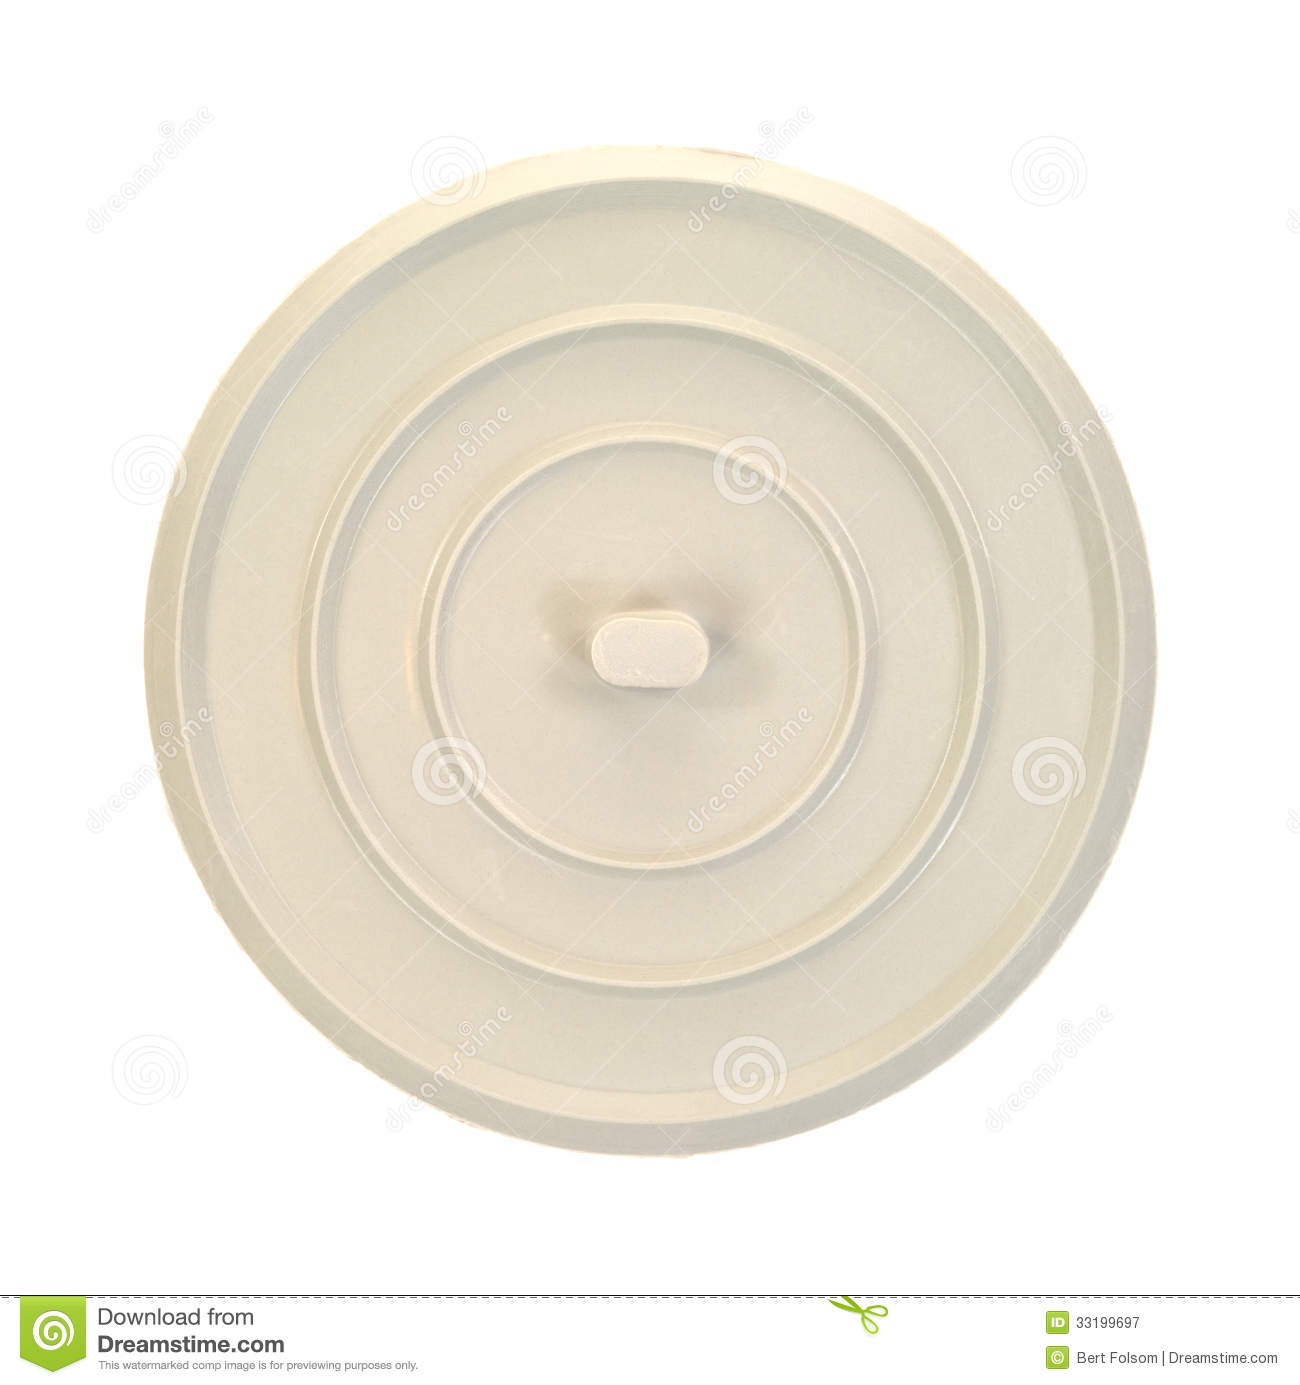 Best Water Stopper : Round rubber sink stopper stock image of unused